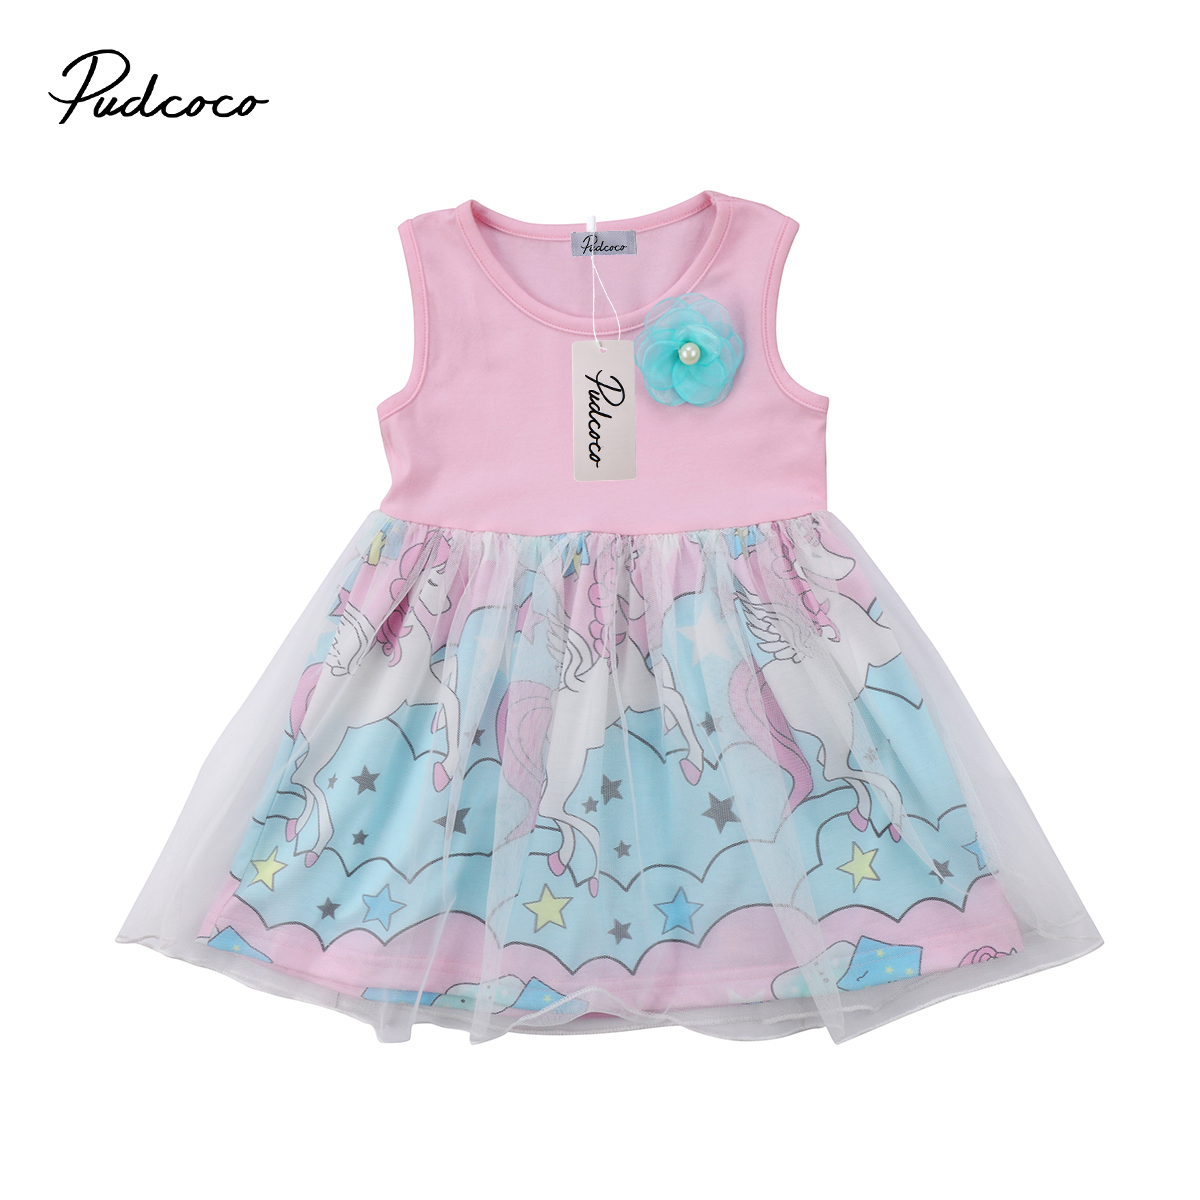 Kid Baby Girl Floral Unicorn Pageant Party Tulle Tutu Dress Summer Sleeveless Cotton Dress Vestidos Sundress Clothes